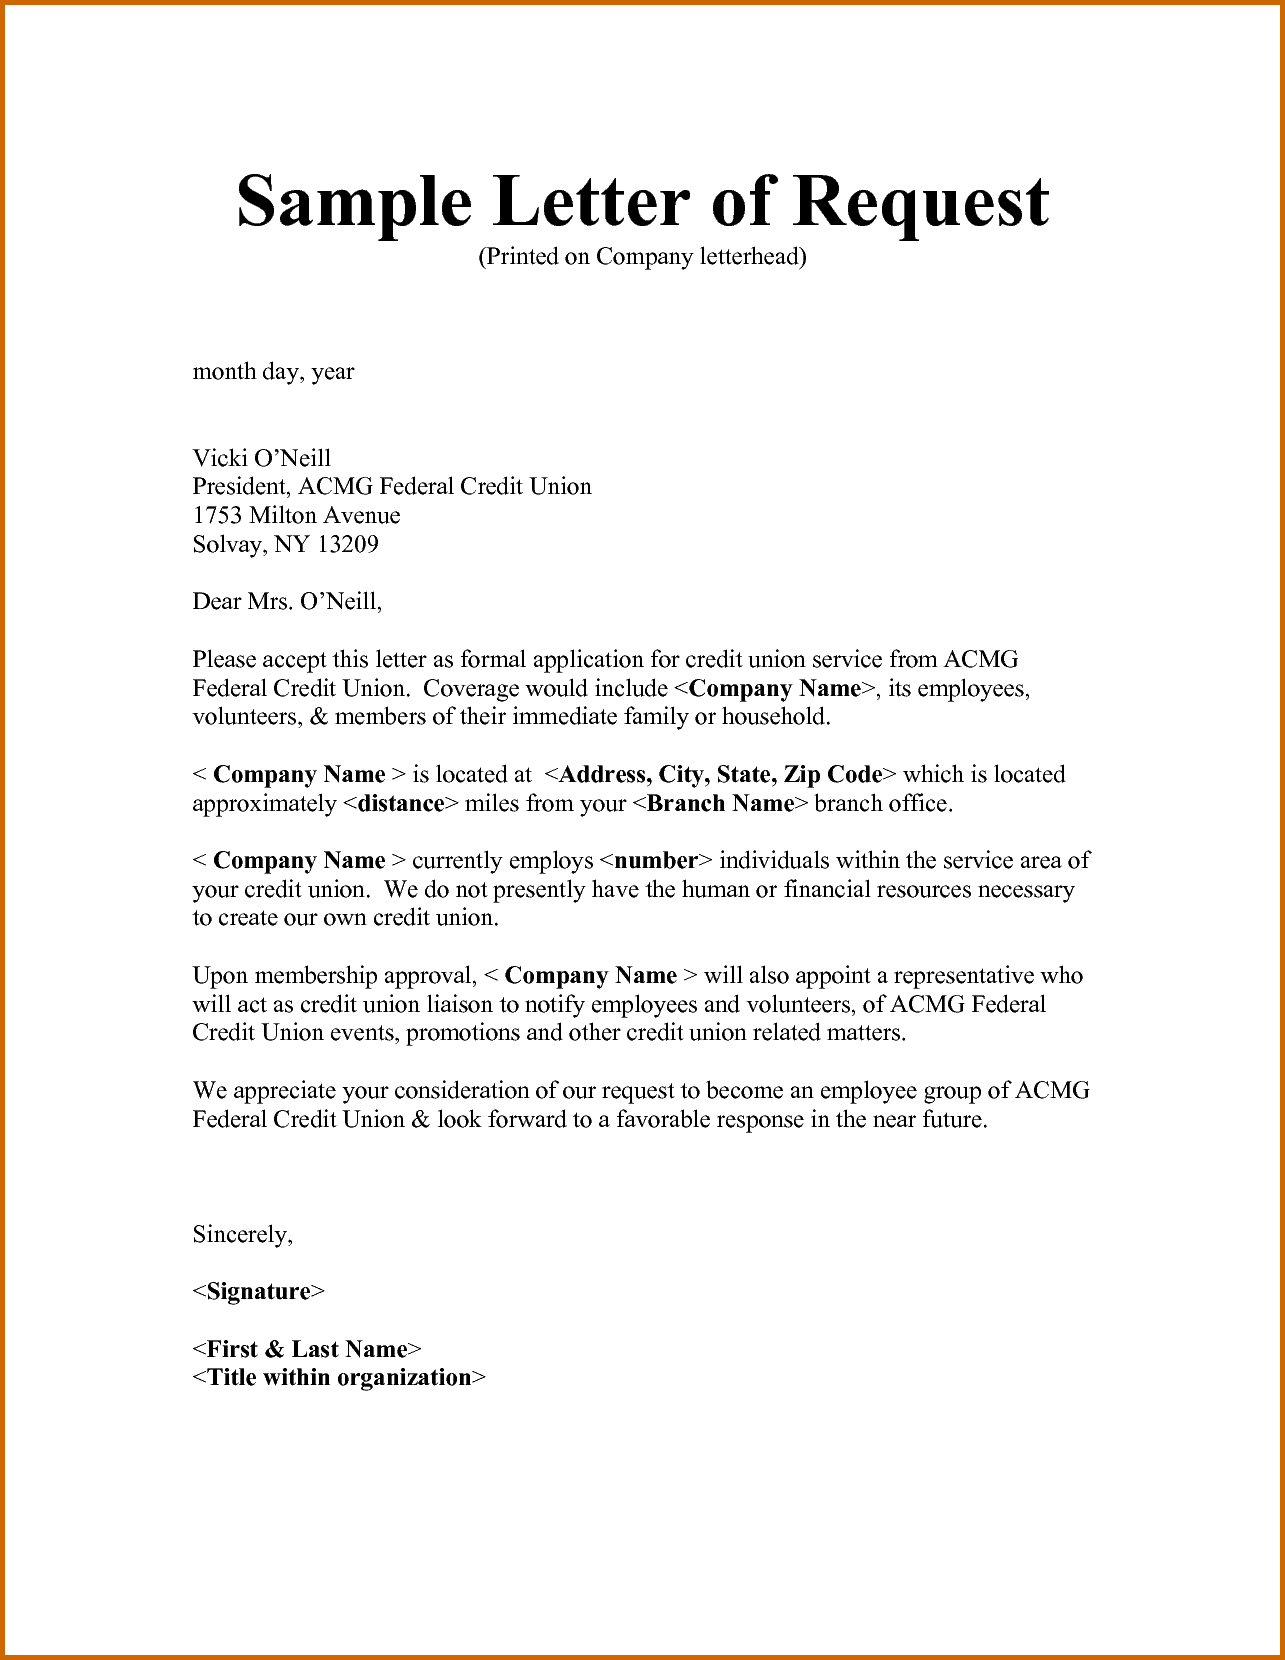 Nice birthday present for husband years these are some very unique sample request letters writing professional letter requesting job recommendation from professor best free home design idea inspiration madrichimfo Image collections